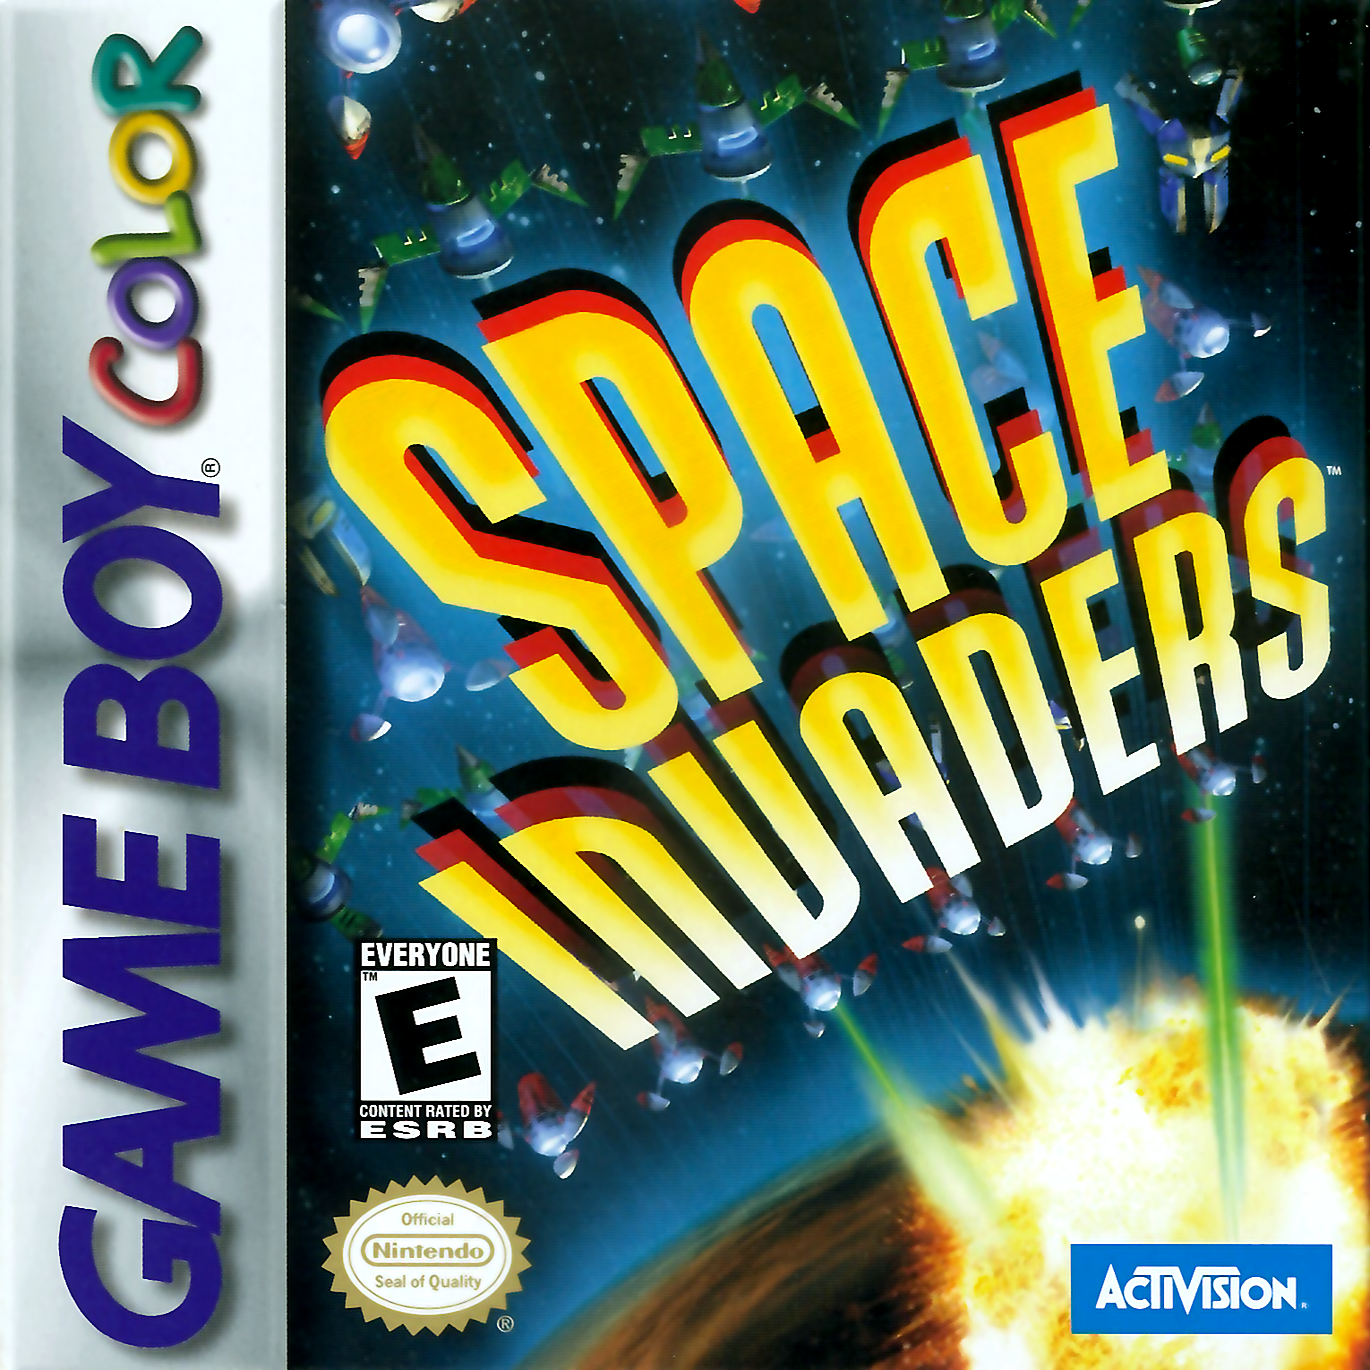 Game boy color online games - Play Space Invaders Nintendo Game Boy Color Online